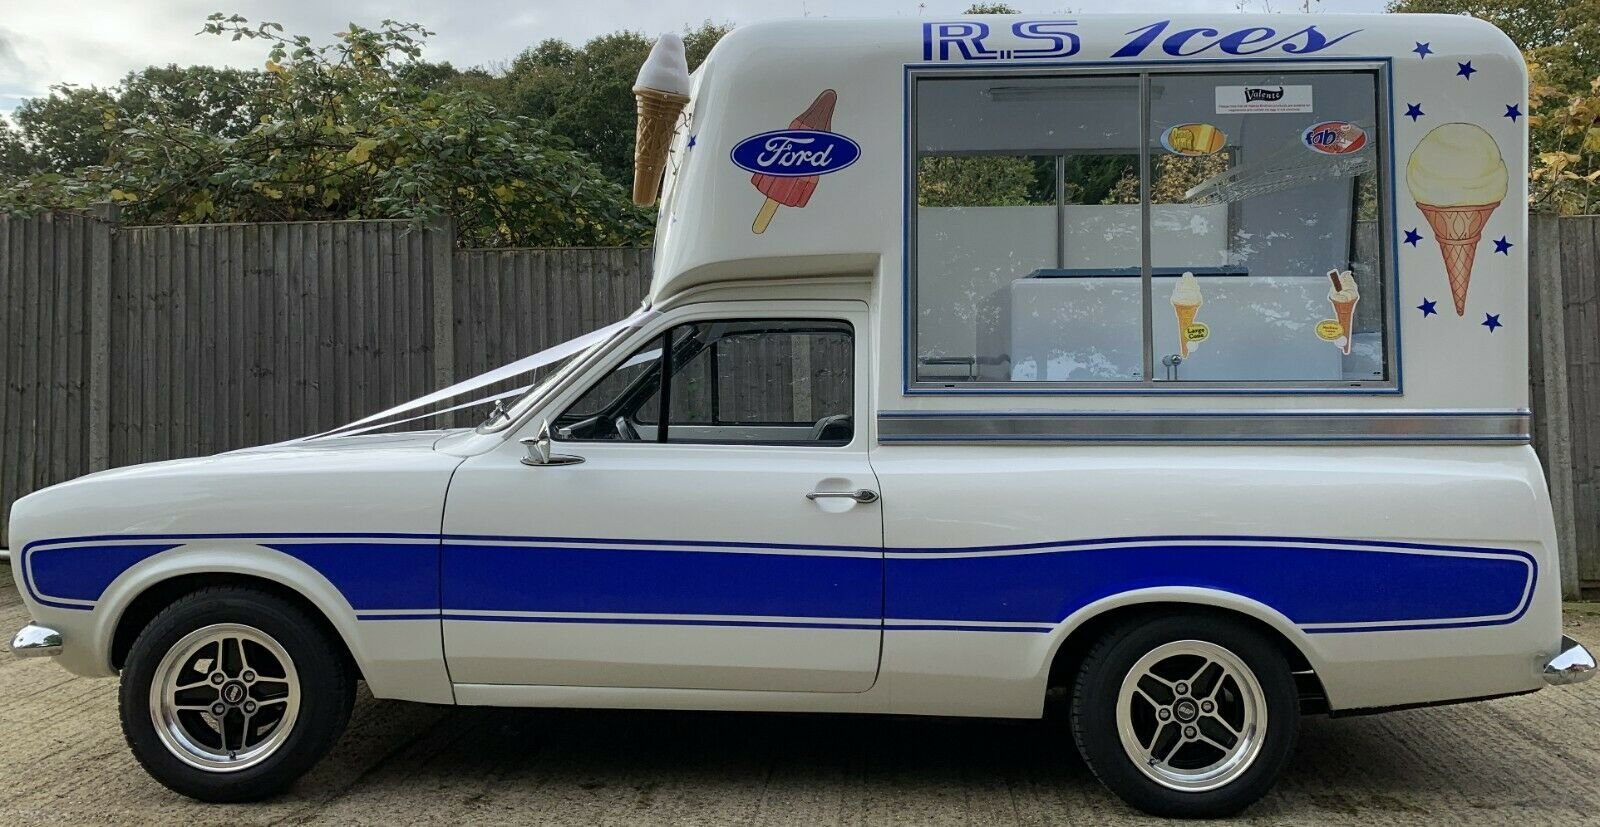 1971 Incredible MK1 Ford Escort Ice Cream Van For Sale (picture 3 of 6)